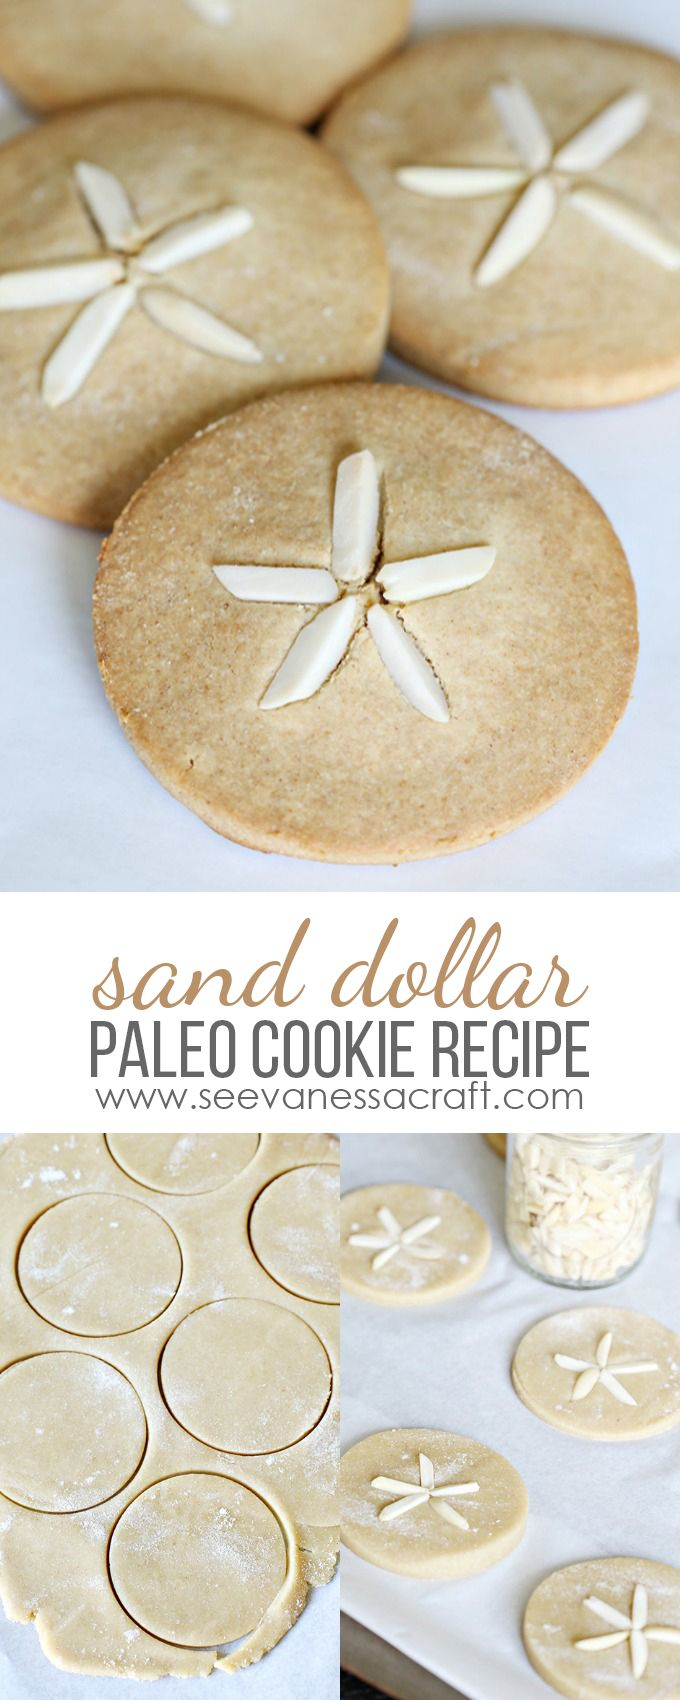 Sand Dollar Cookies - Gluten Free, Grain Free, Sugar Free, Dairy Free, Paleo Friendly Dessert Recipe